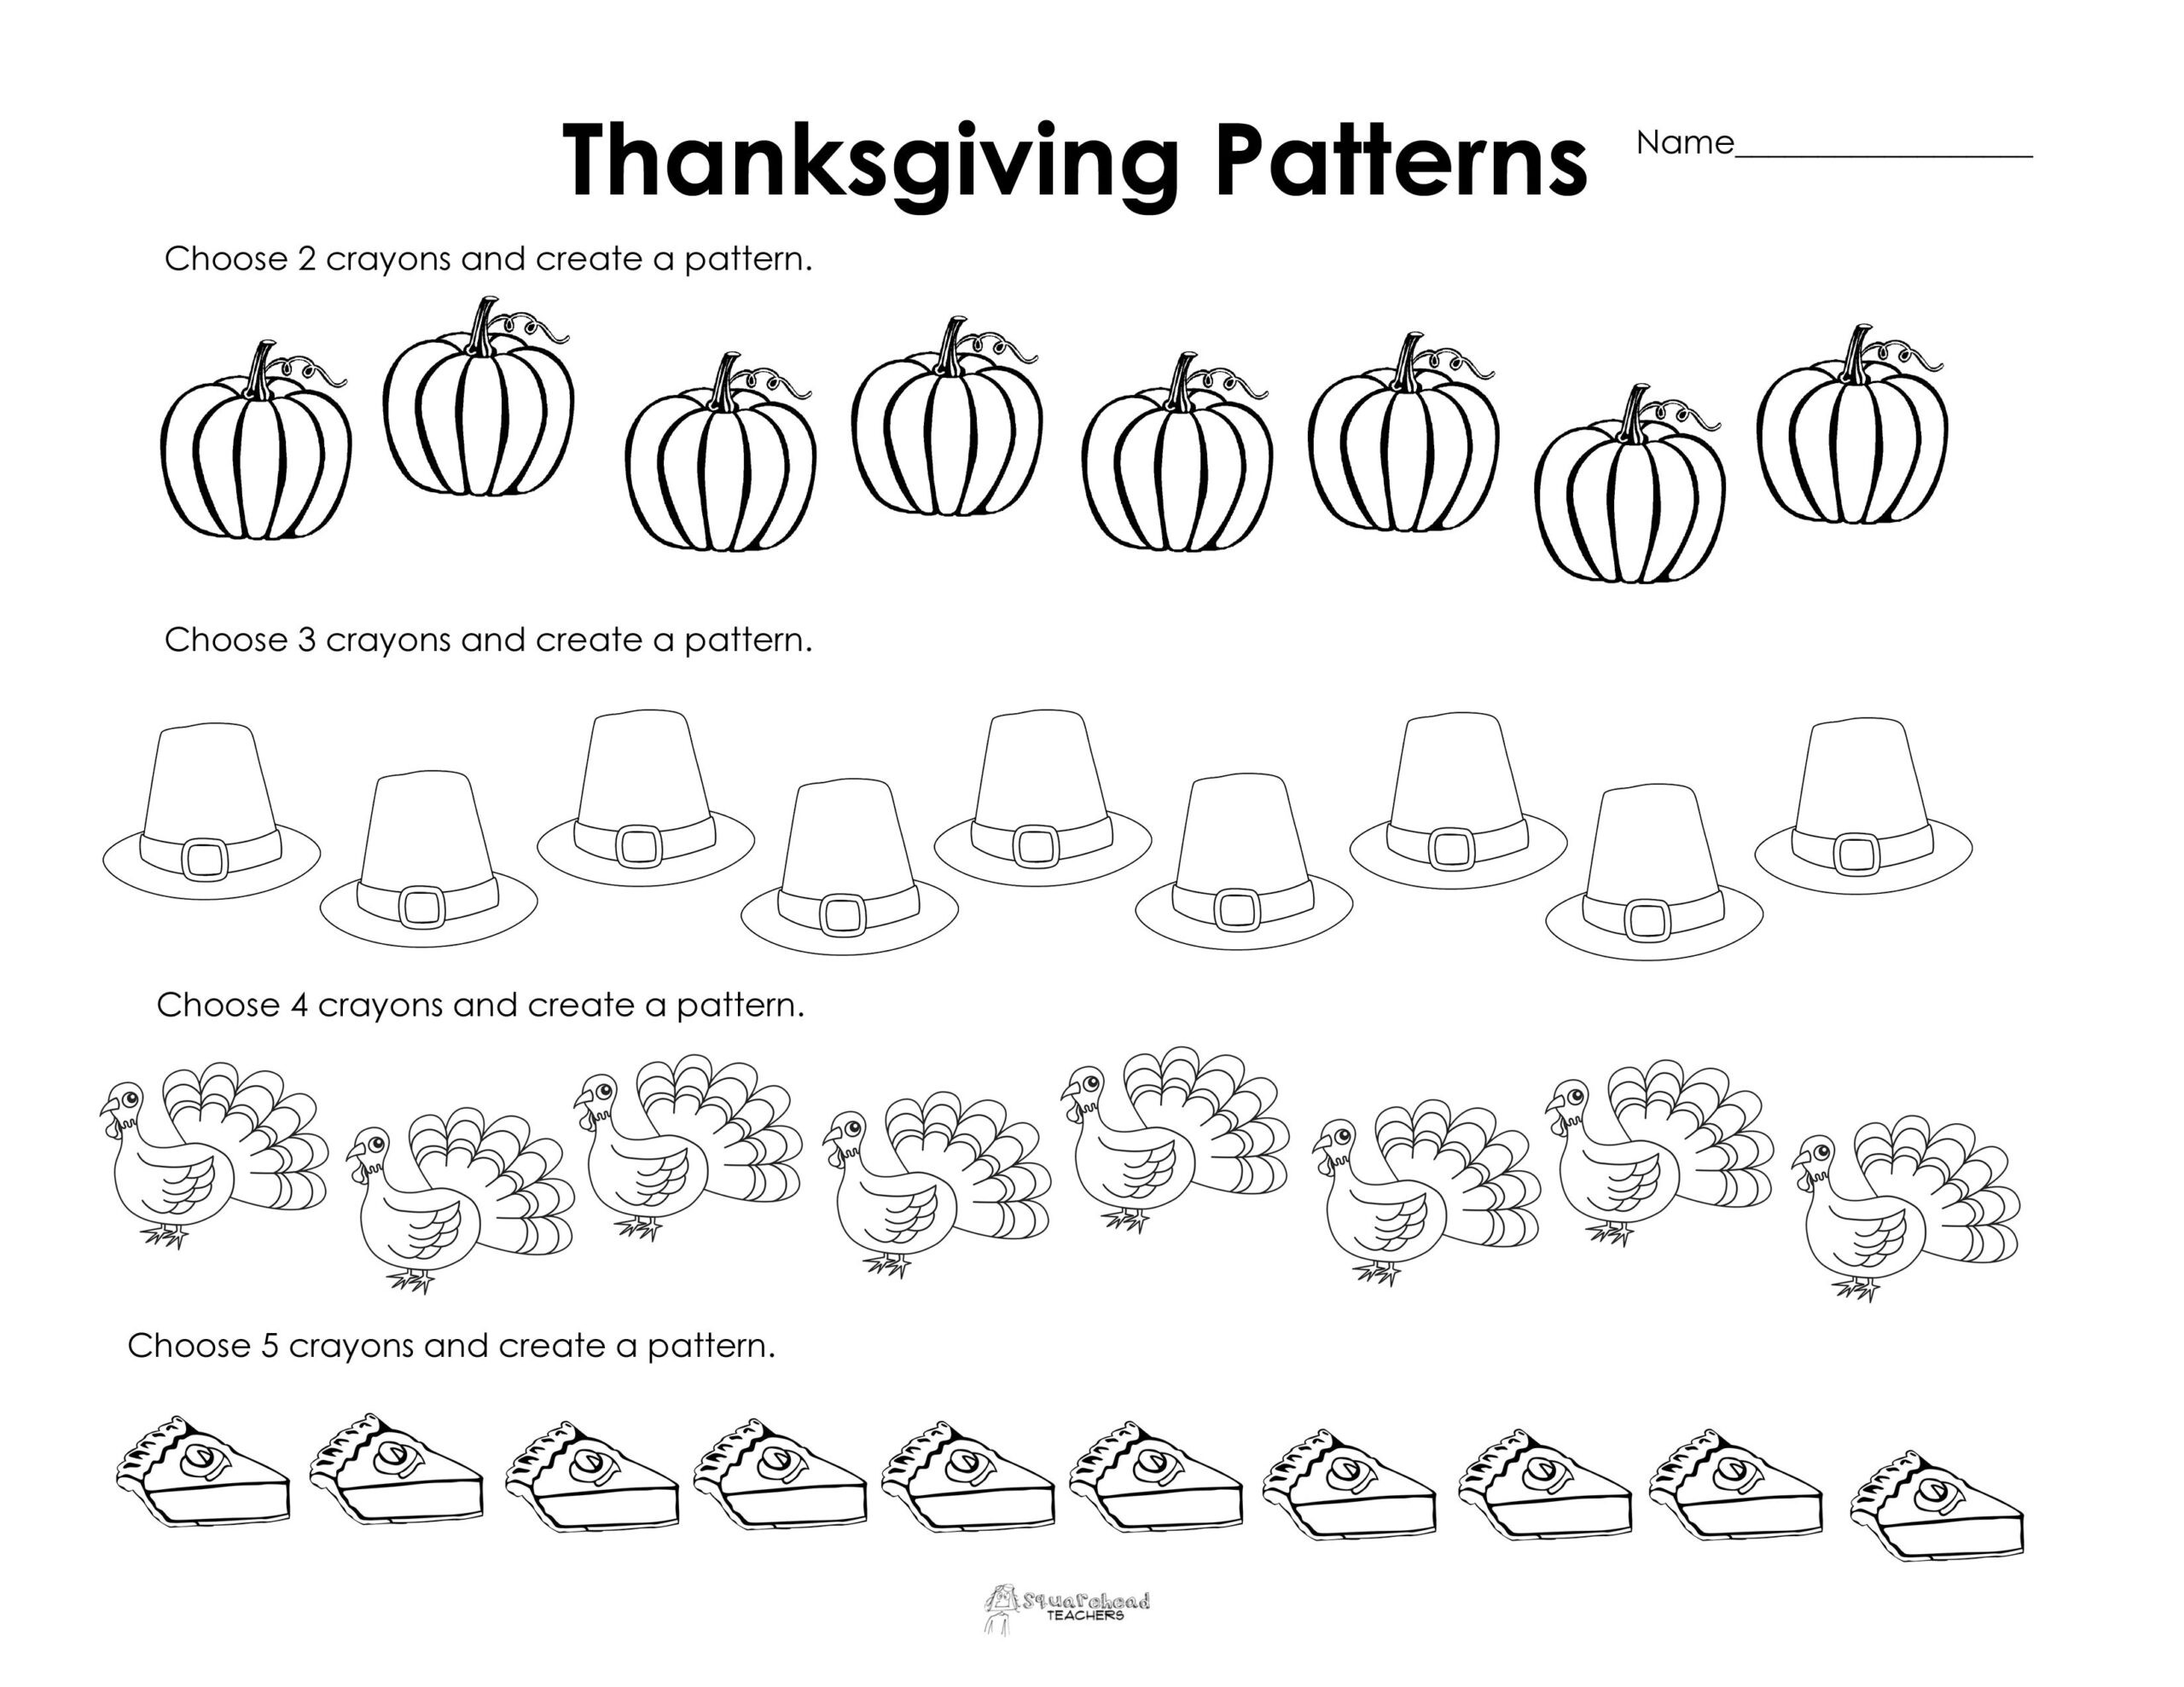 Thanksgiving Math Worksheets 5th Grade Making Patterns Thanksgiving Style Free Worksheet Math